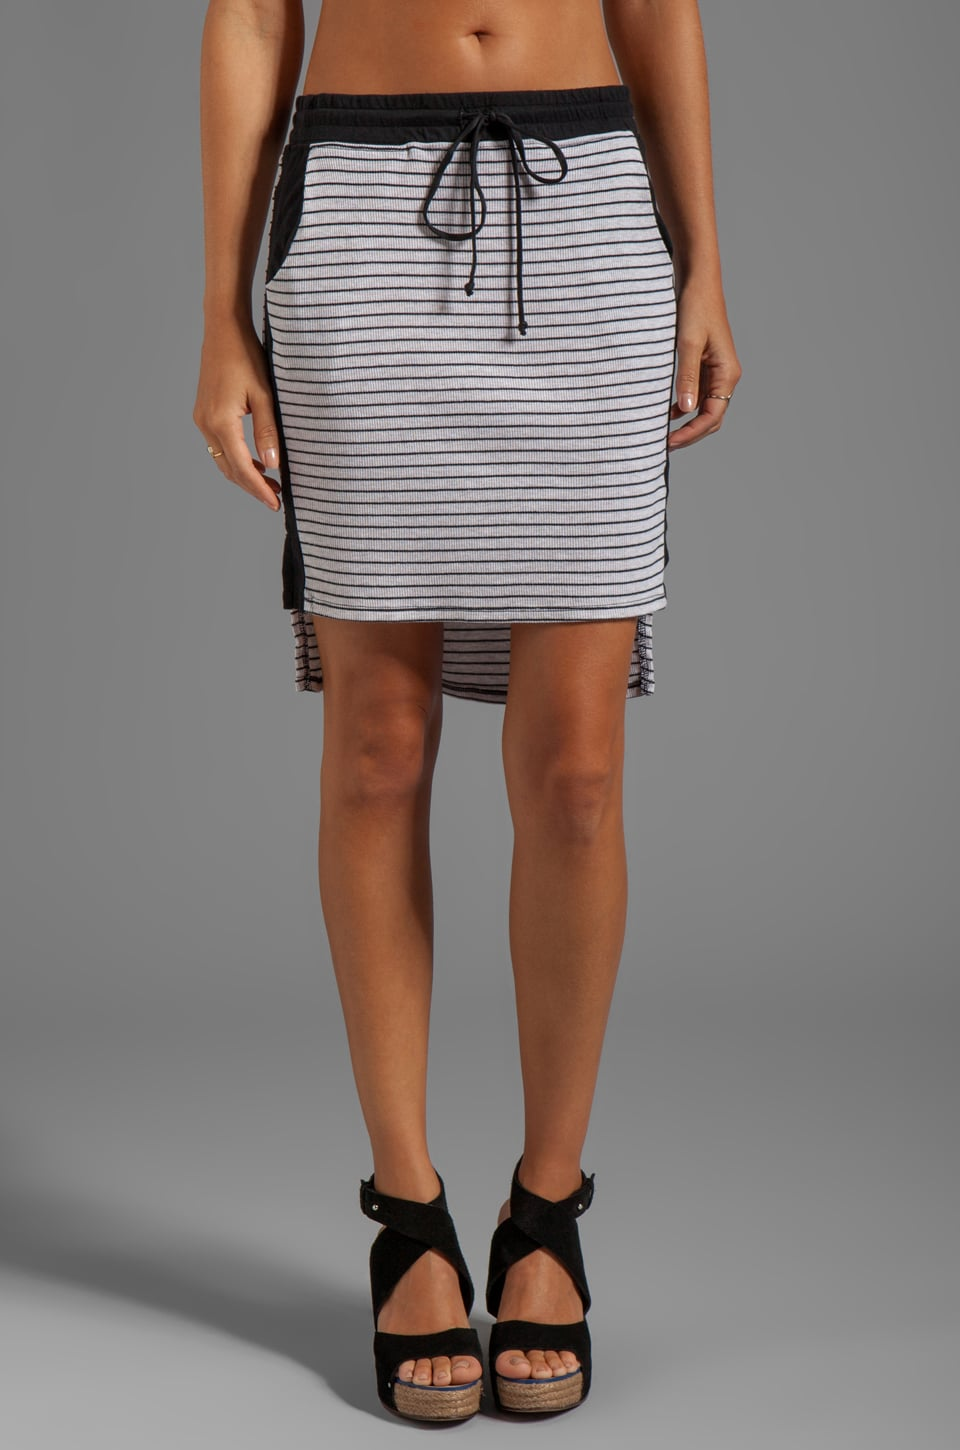 LA Made High-Low Pencil Skirt in Oatmeal/Black